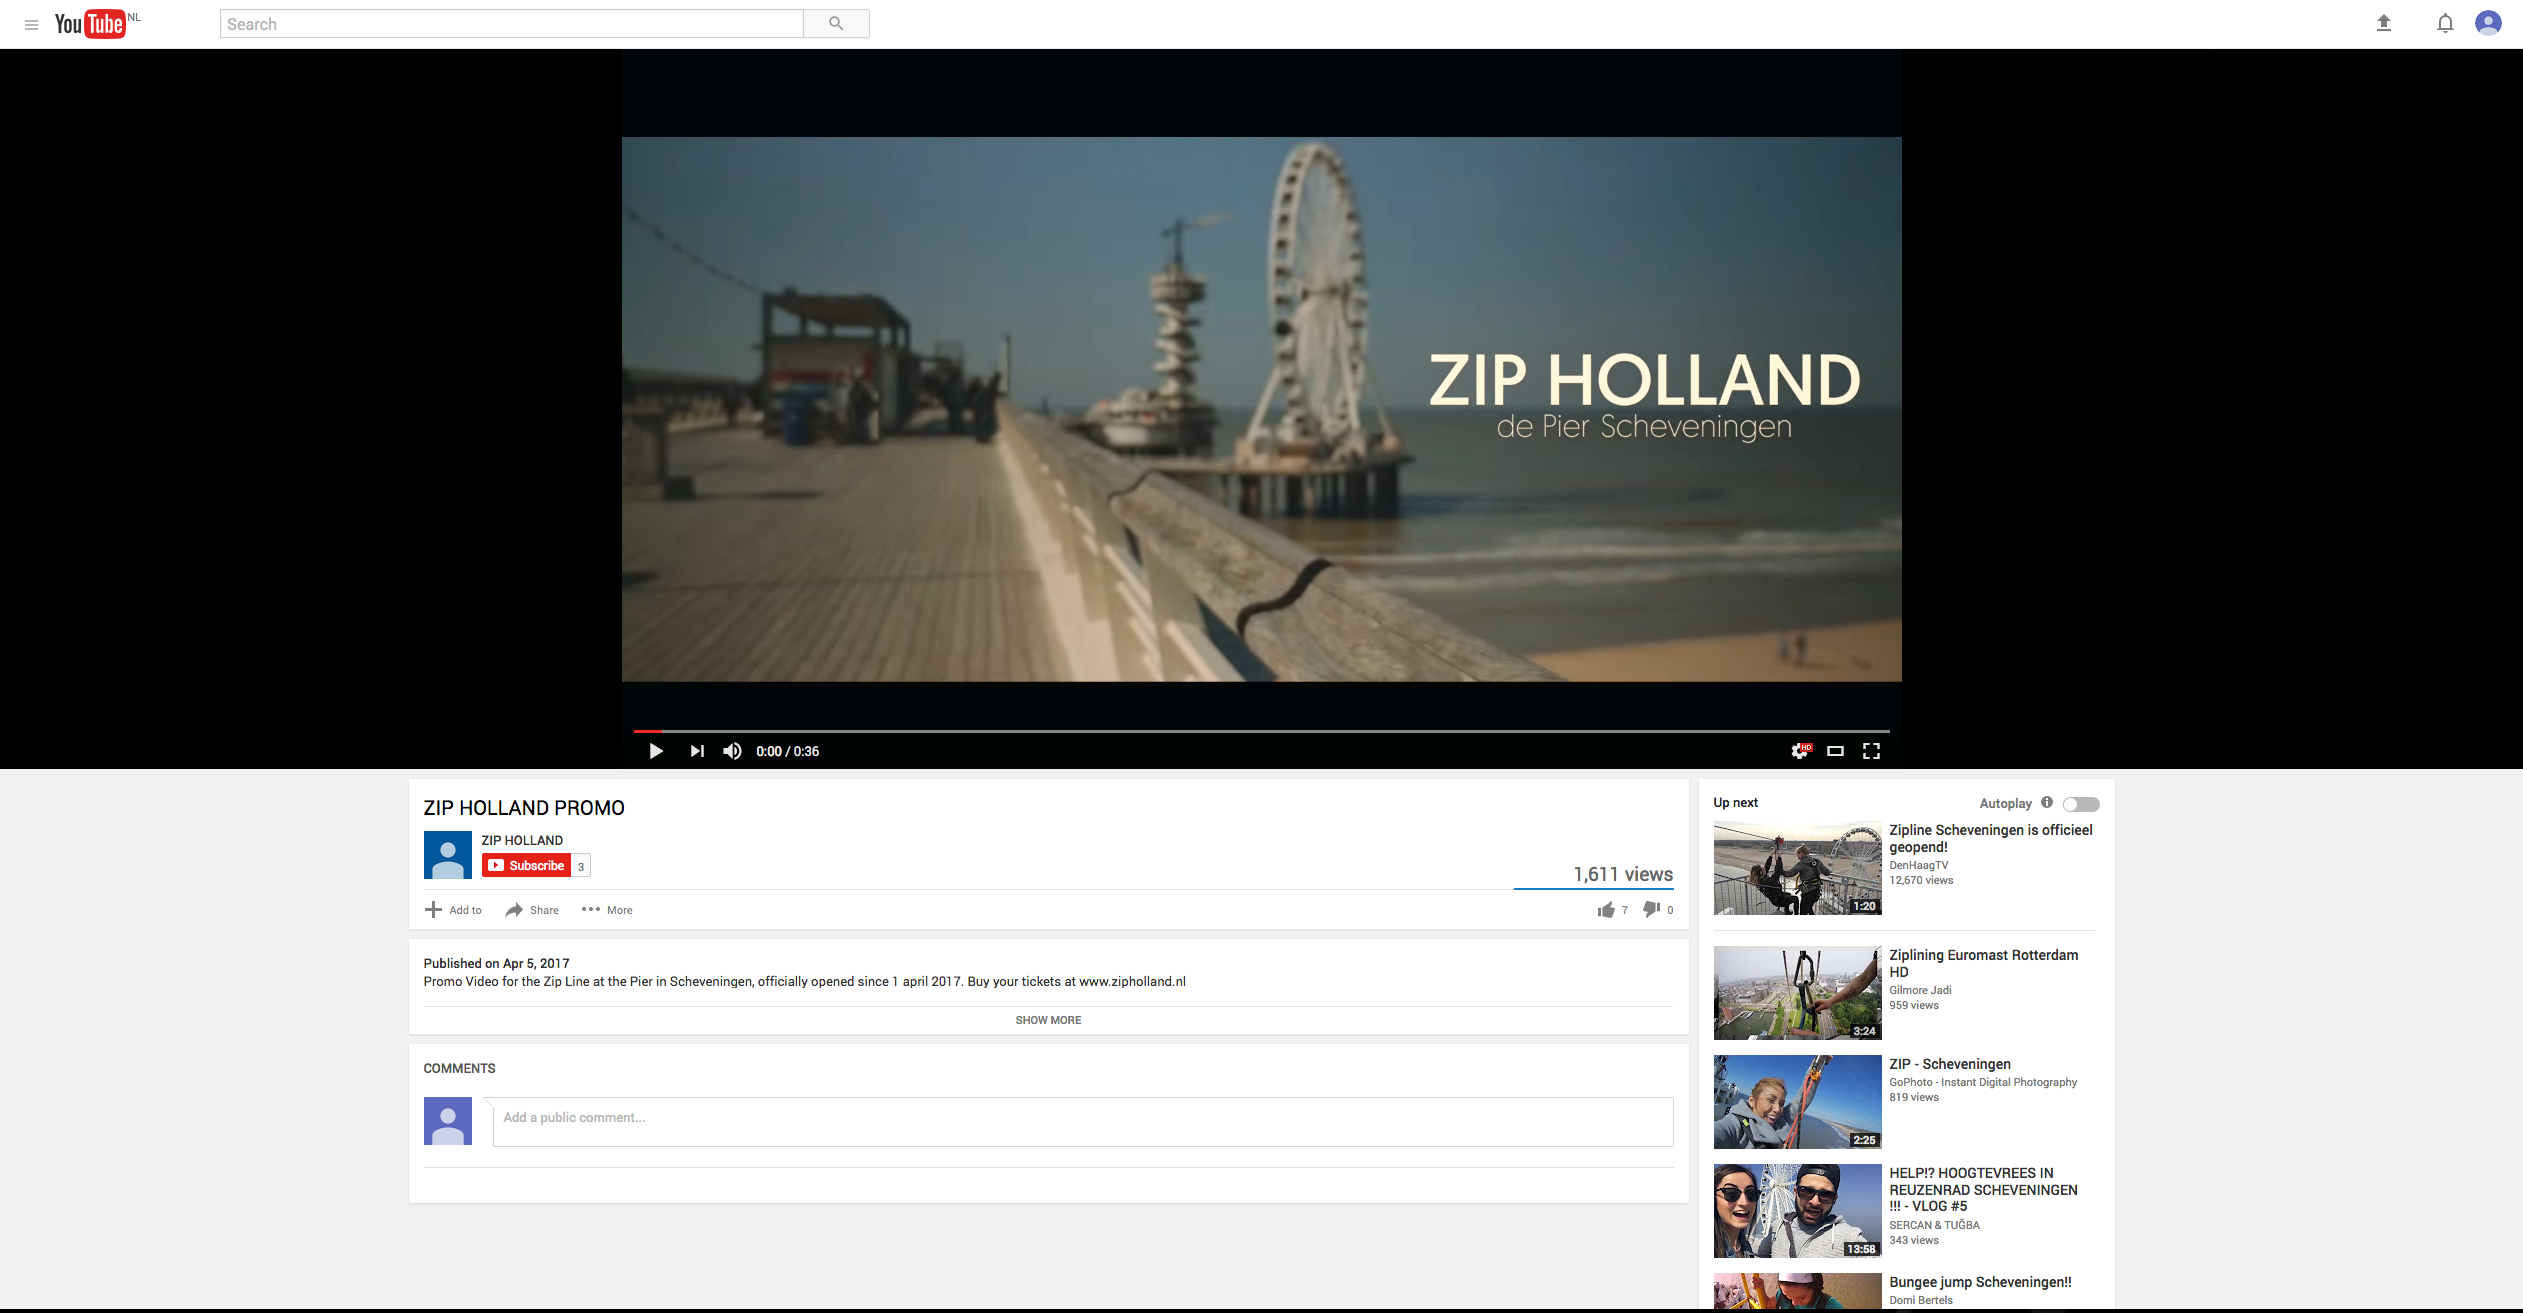 Zip holland promo video